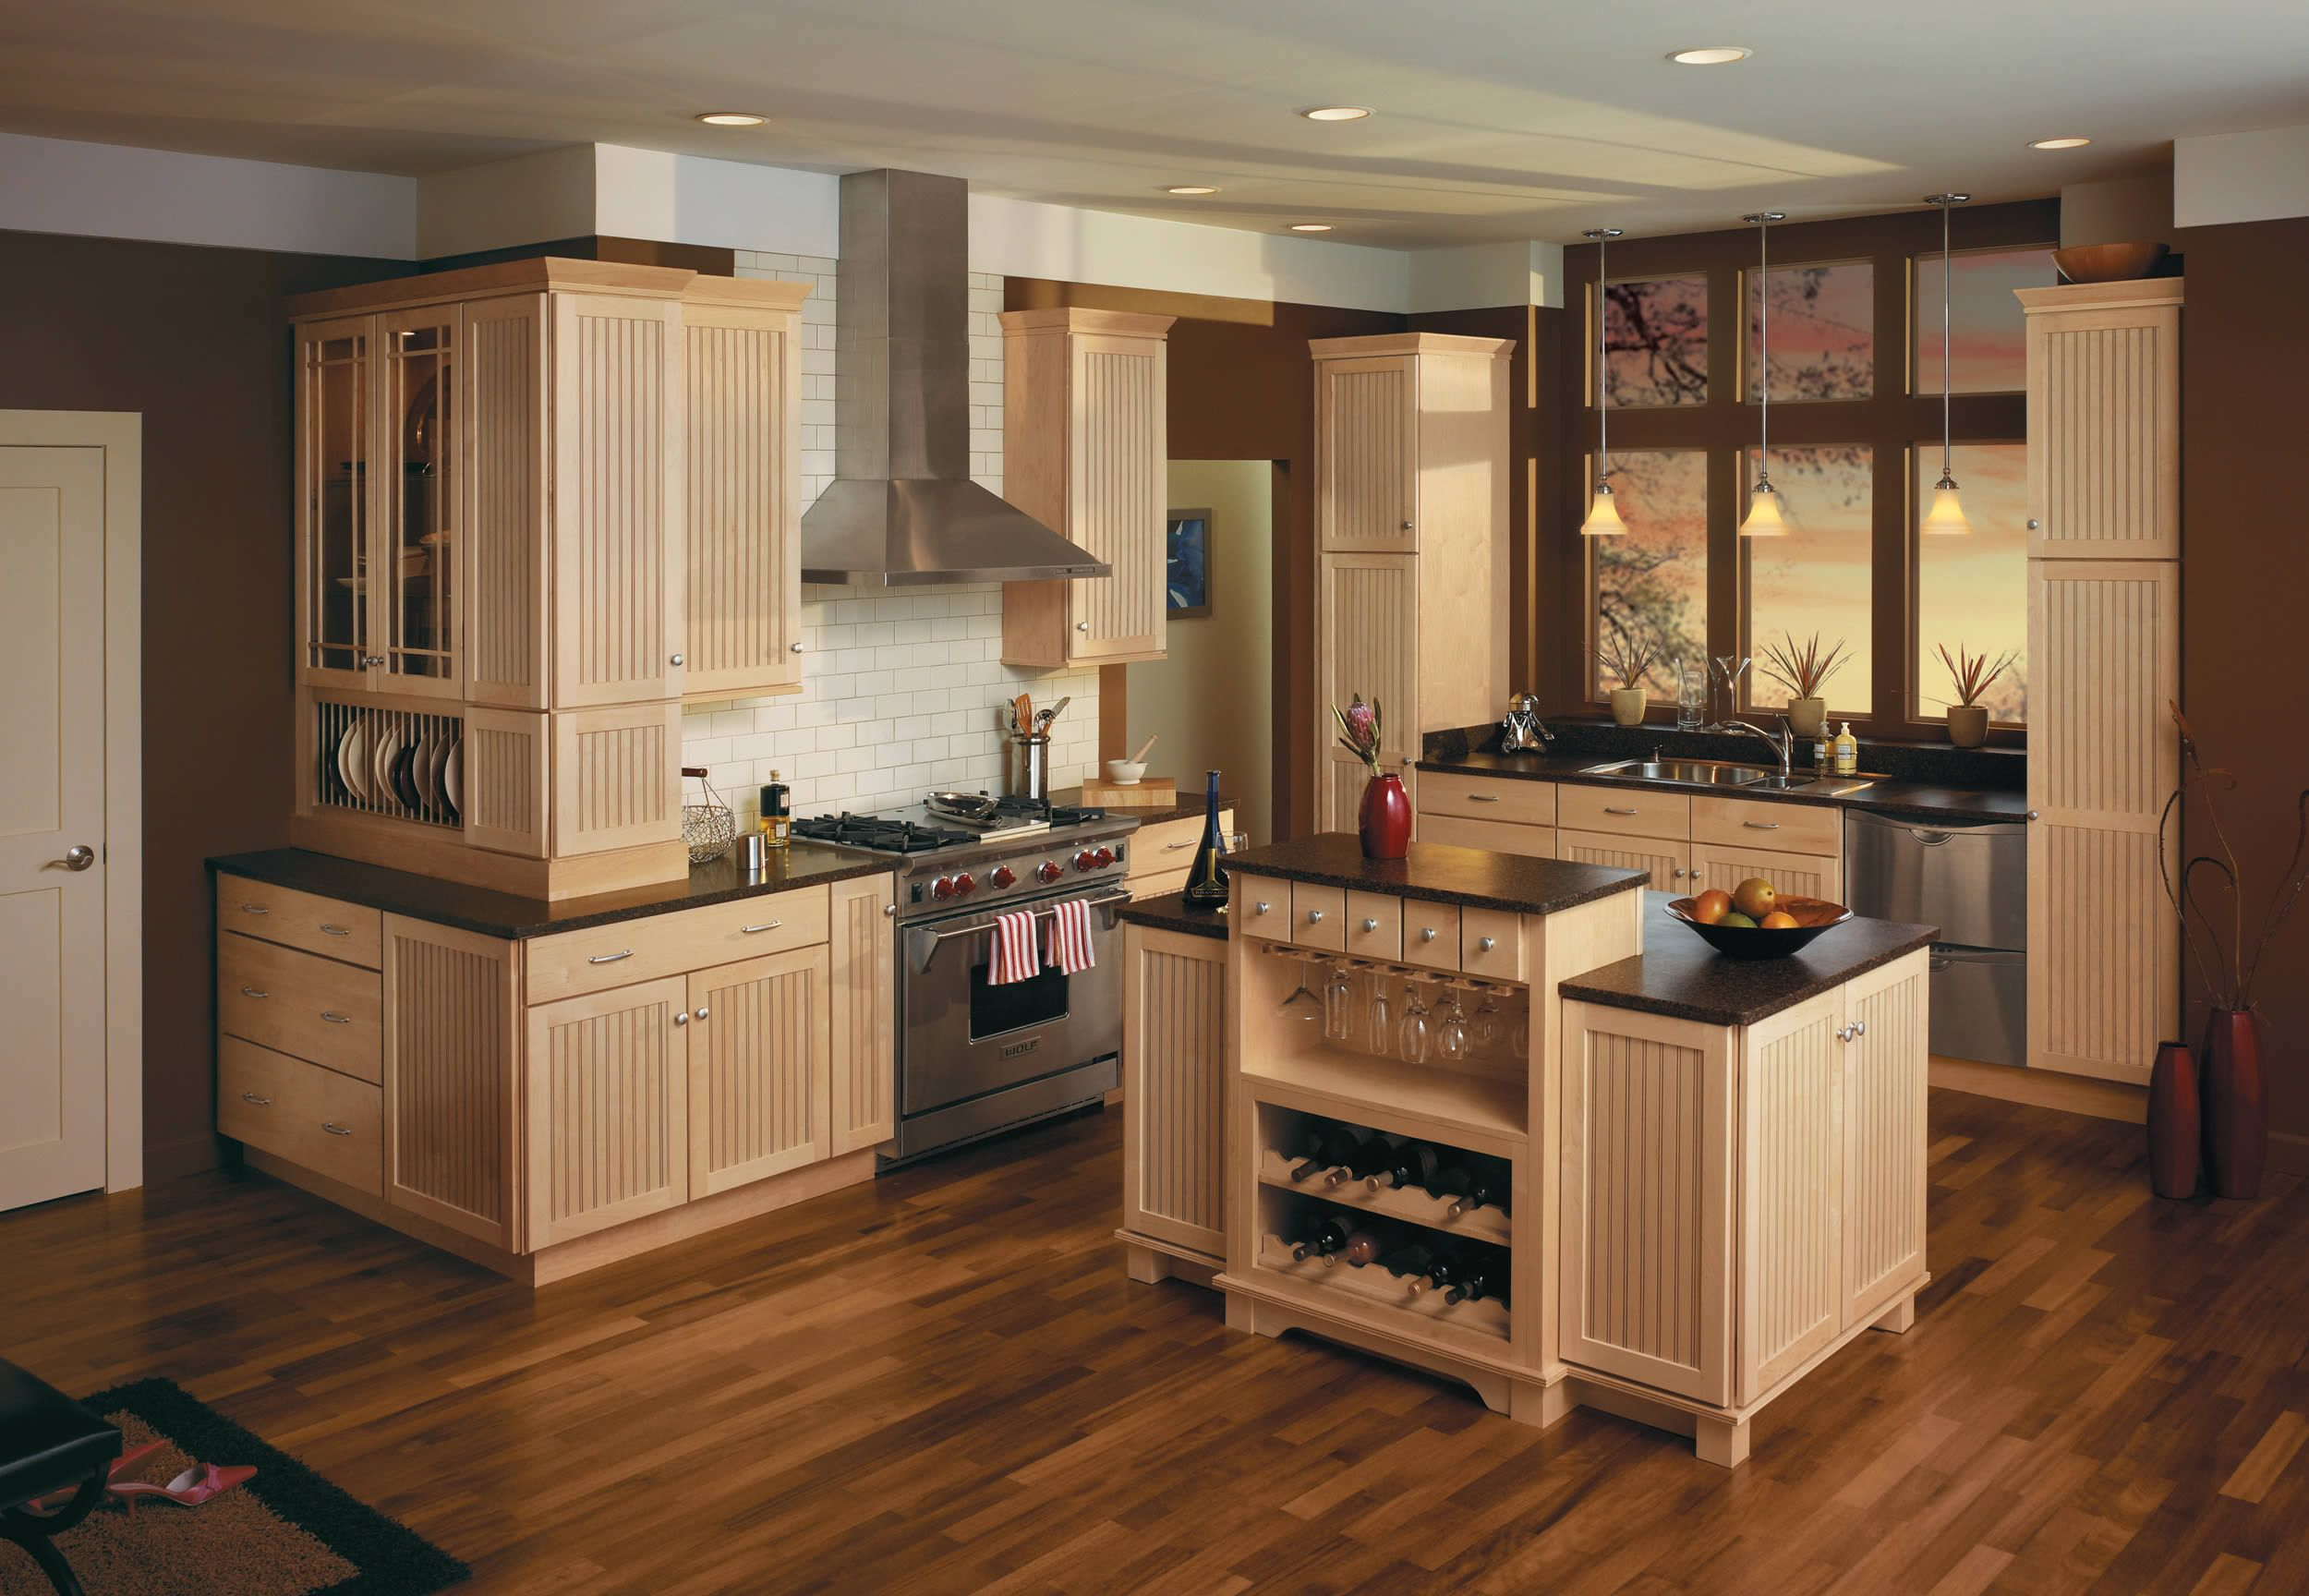 Best Cabinets And Countertops Zeeland Lumber And Supply 400 x 300